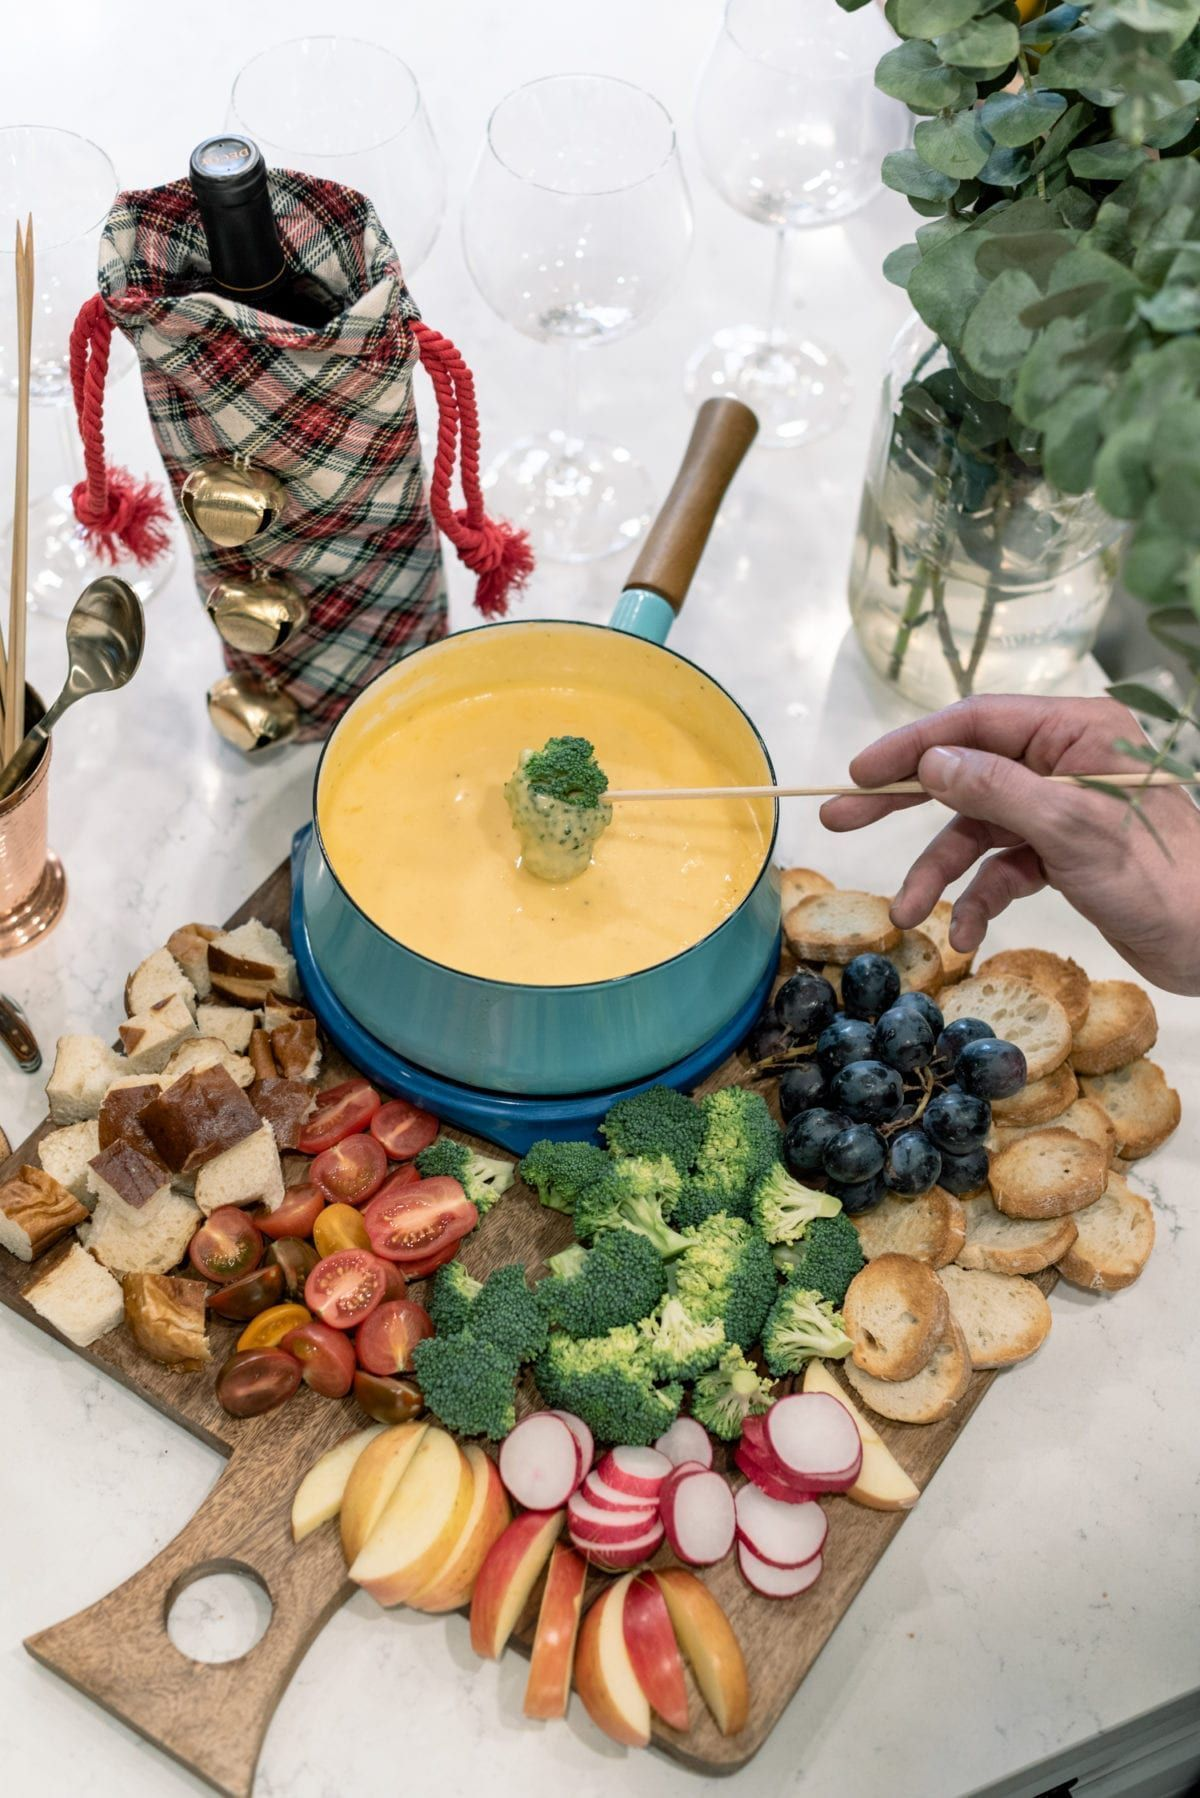 How to Host a Holiday Fondue Party #fondueparty How to Host a Holiday Fondue Party - Darling Down South #fondueparty How to Host a Holiday Fondue Party #fondueparty How to Host a Holiday Fondue Party - Darling Down South #fondueparty How to Host a Holiday Fondue Party #fondueparty How to Host a Holiday Fondue Party - Darling Down South #fondueparty How to Host a Holiday Fondue Party #fondueparty How to Host a Holiday Fondue Party - Darling Down South #fondueparty How to Host a Holiday Fondue Par #fondueparty